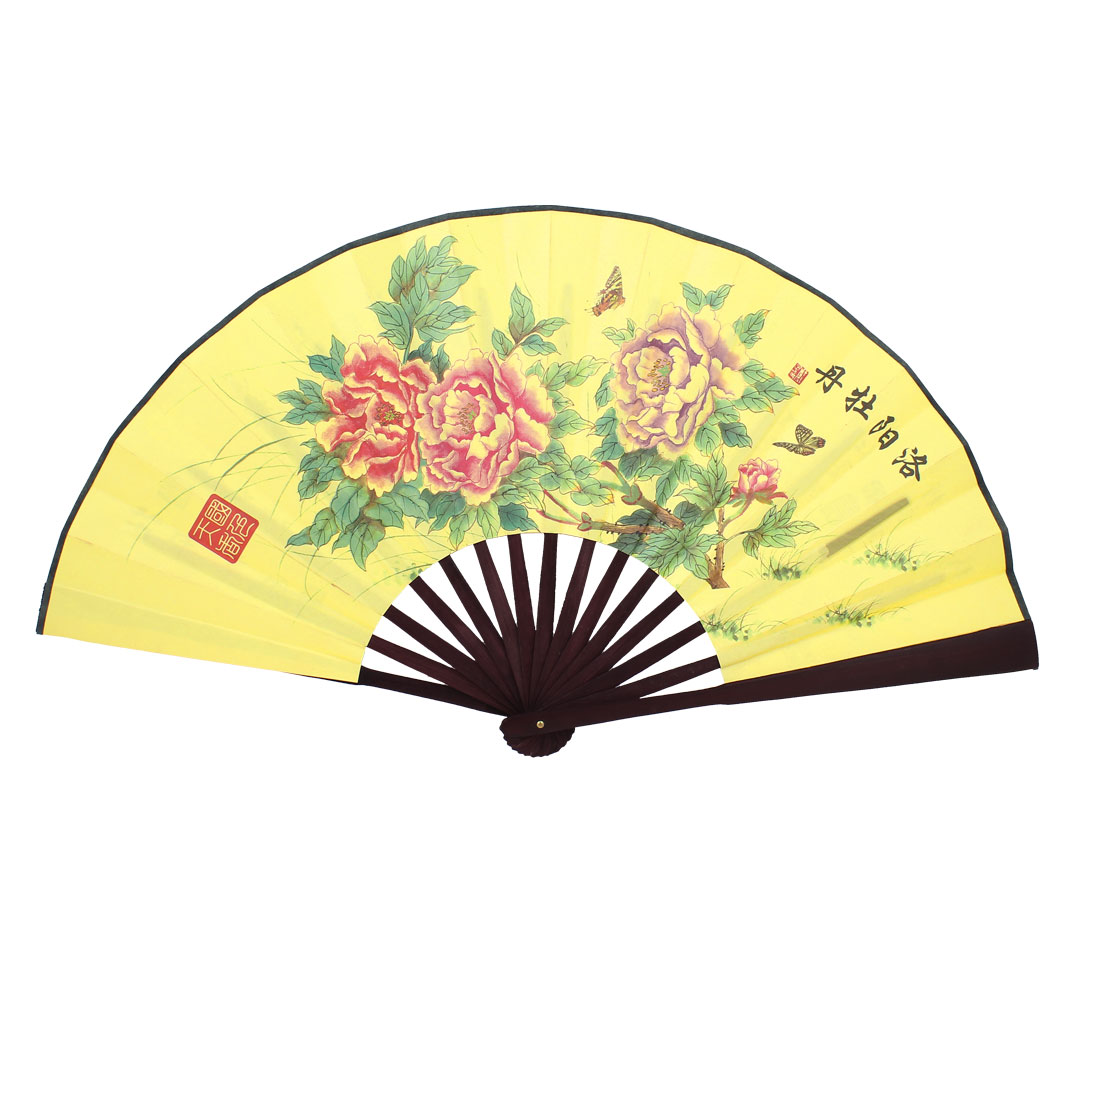 Bamboo Ribs Chinese Poem Peony Printed Fabric Foldable Craft Hand Fan